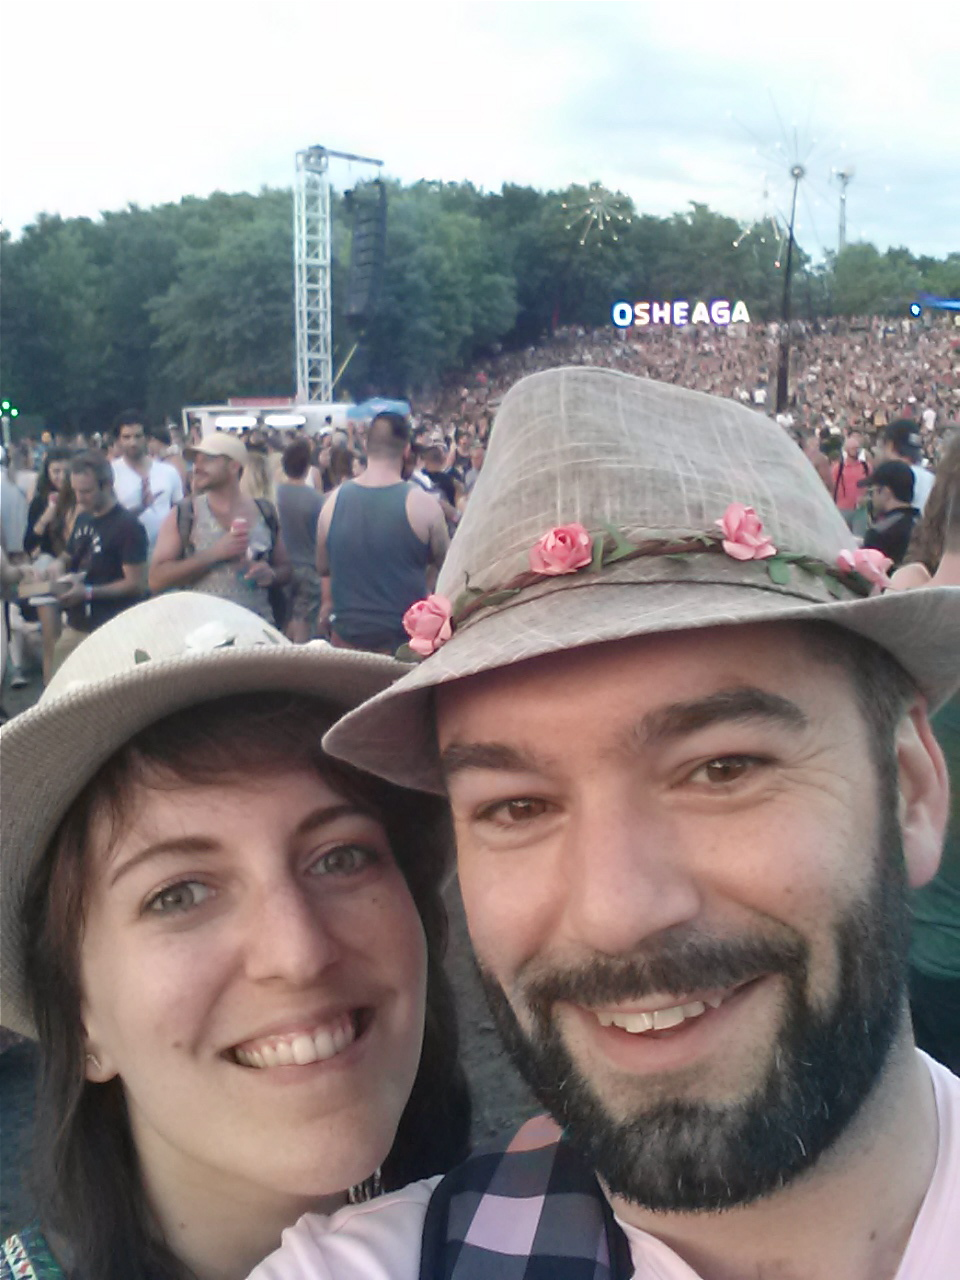 nd one of us in front of the Osheaga sign